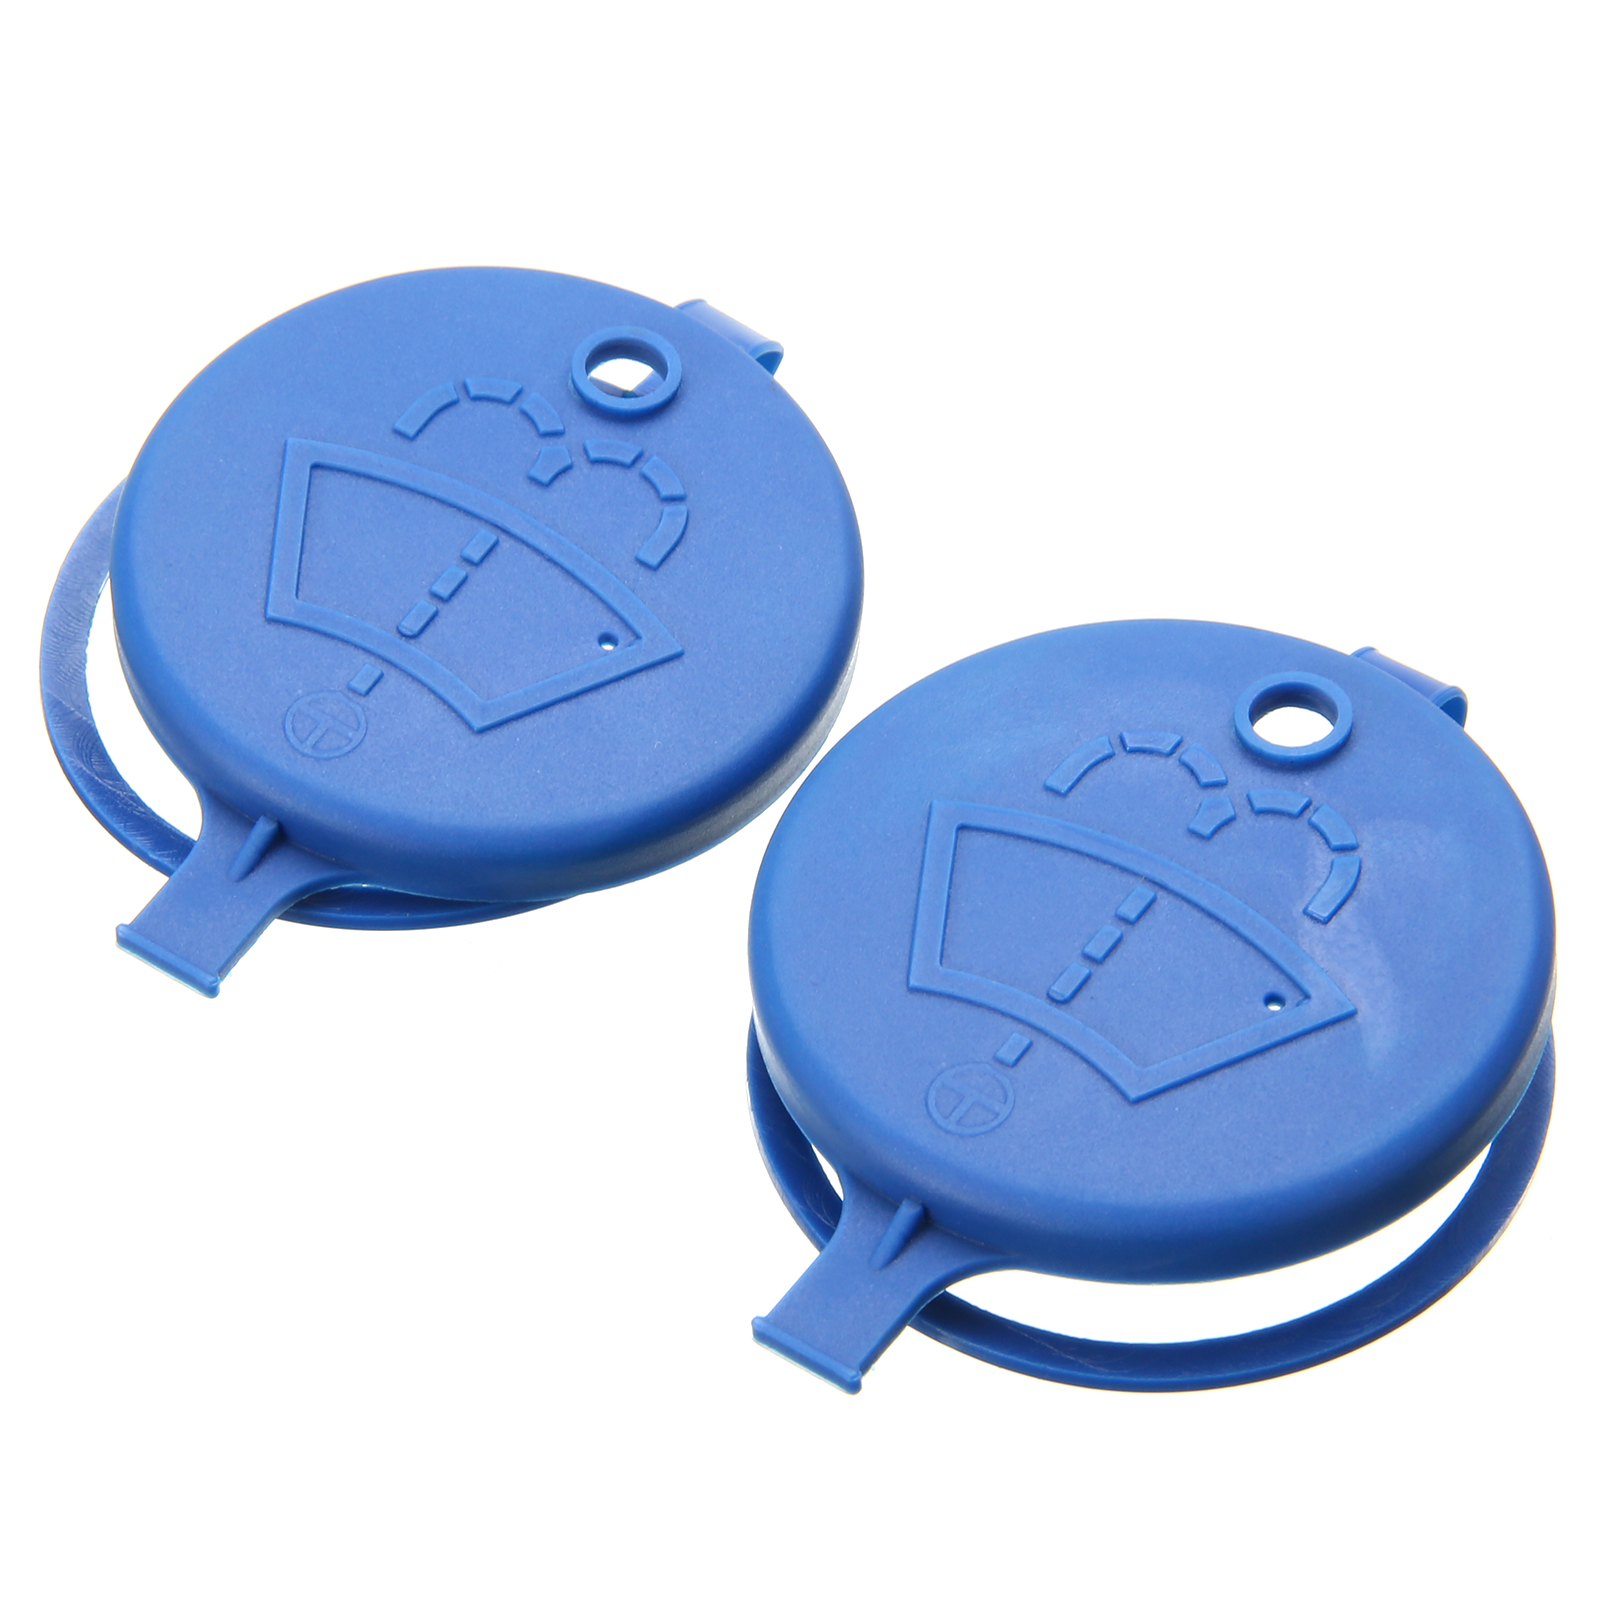 2pcs Car Windshield Wiper Washer Fluid Reservoir Tank Bottle Cap For Peugeot 106 206 207 307 Citroen C2/C-Elysee/Xsara/Picasso